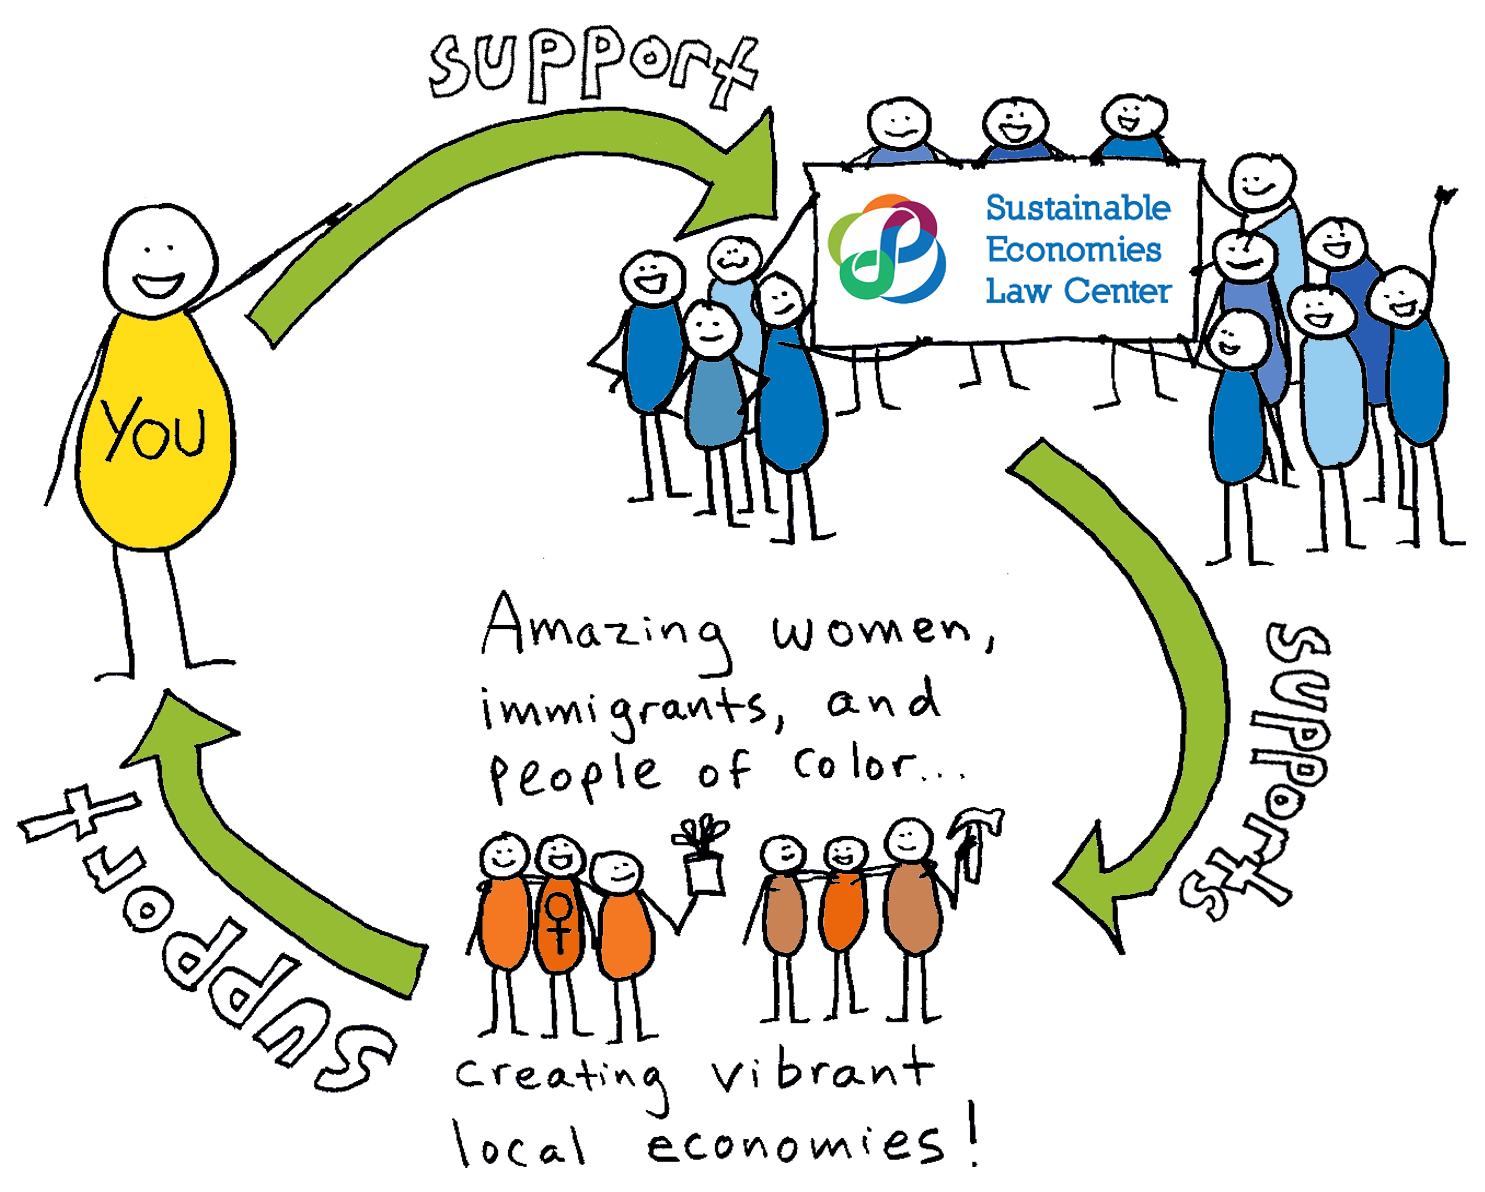 With your support, we can begin a virtuous cycle that builds the power of marginalized communities and supports us all!